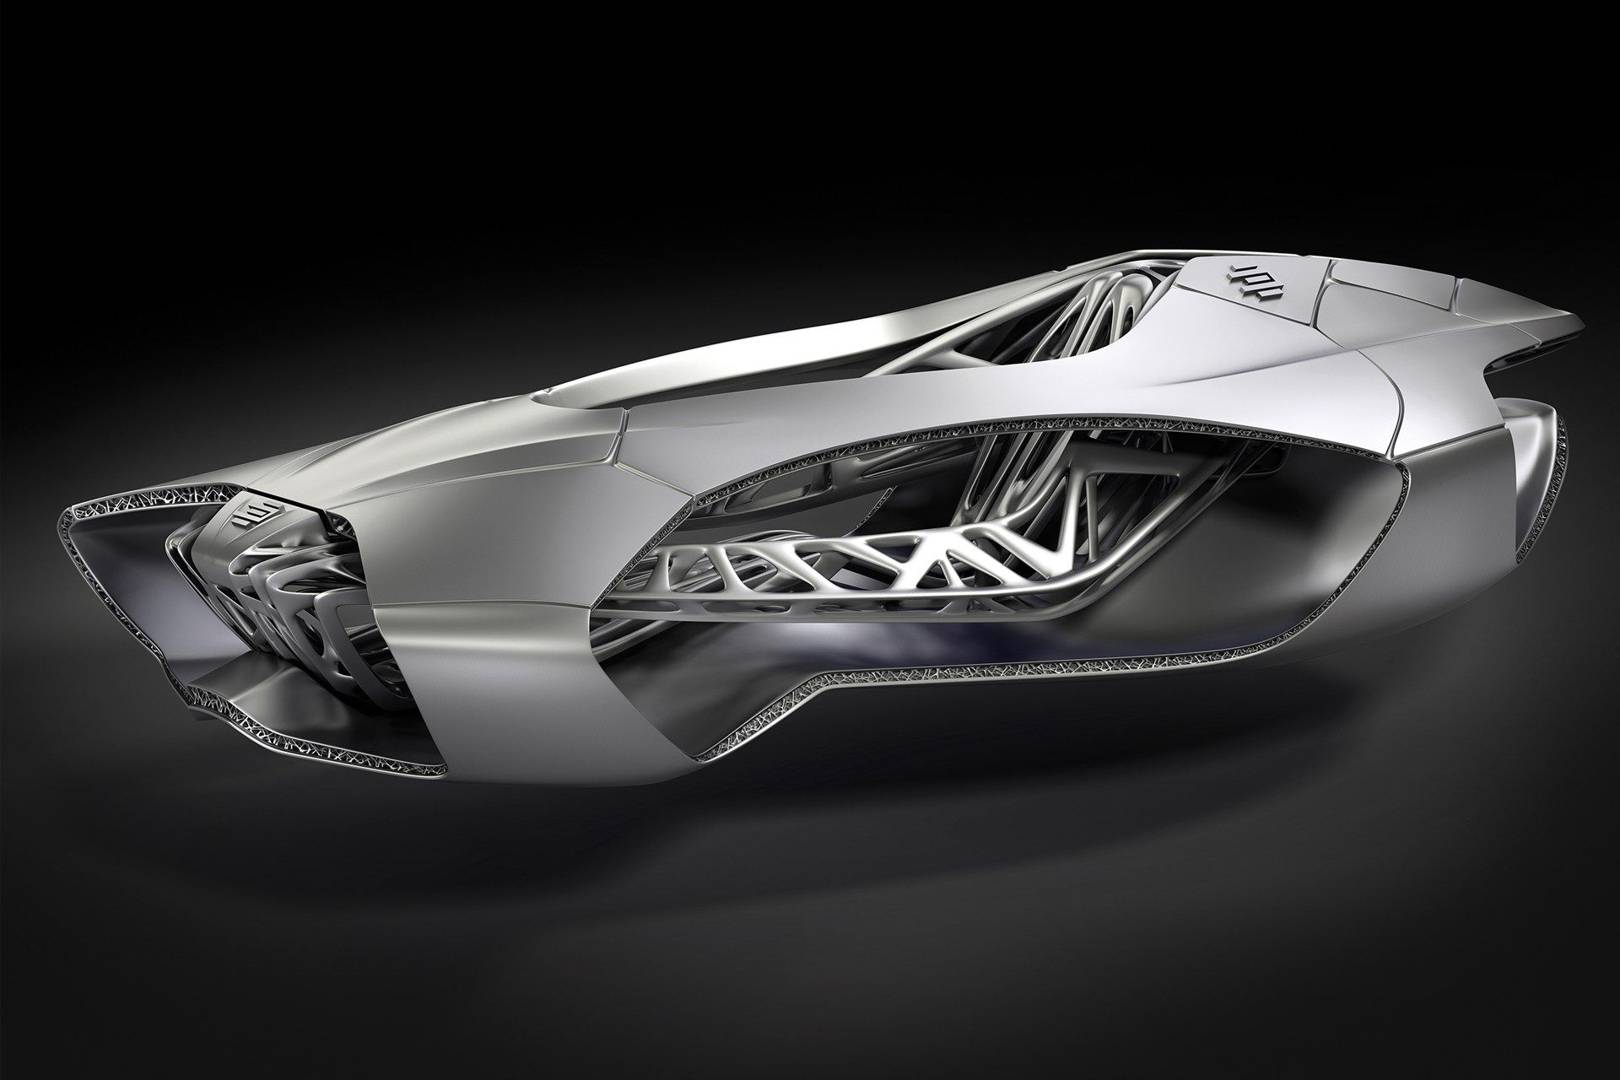 3D printed car inspired by turtle skeleton | WIRED UK